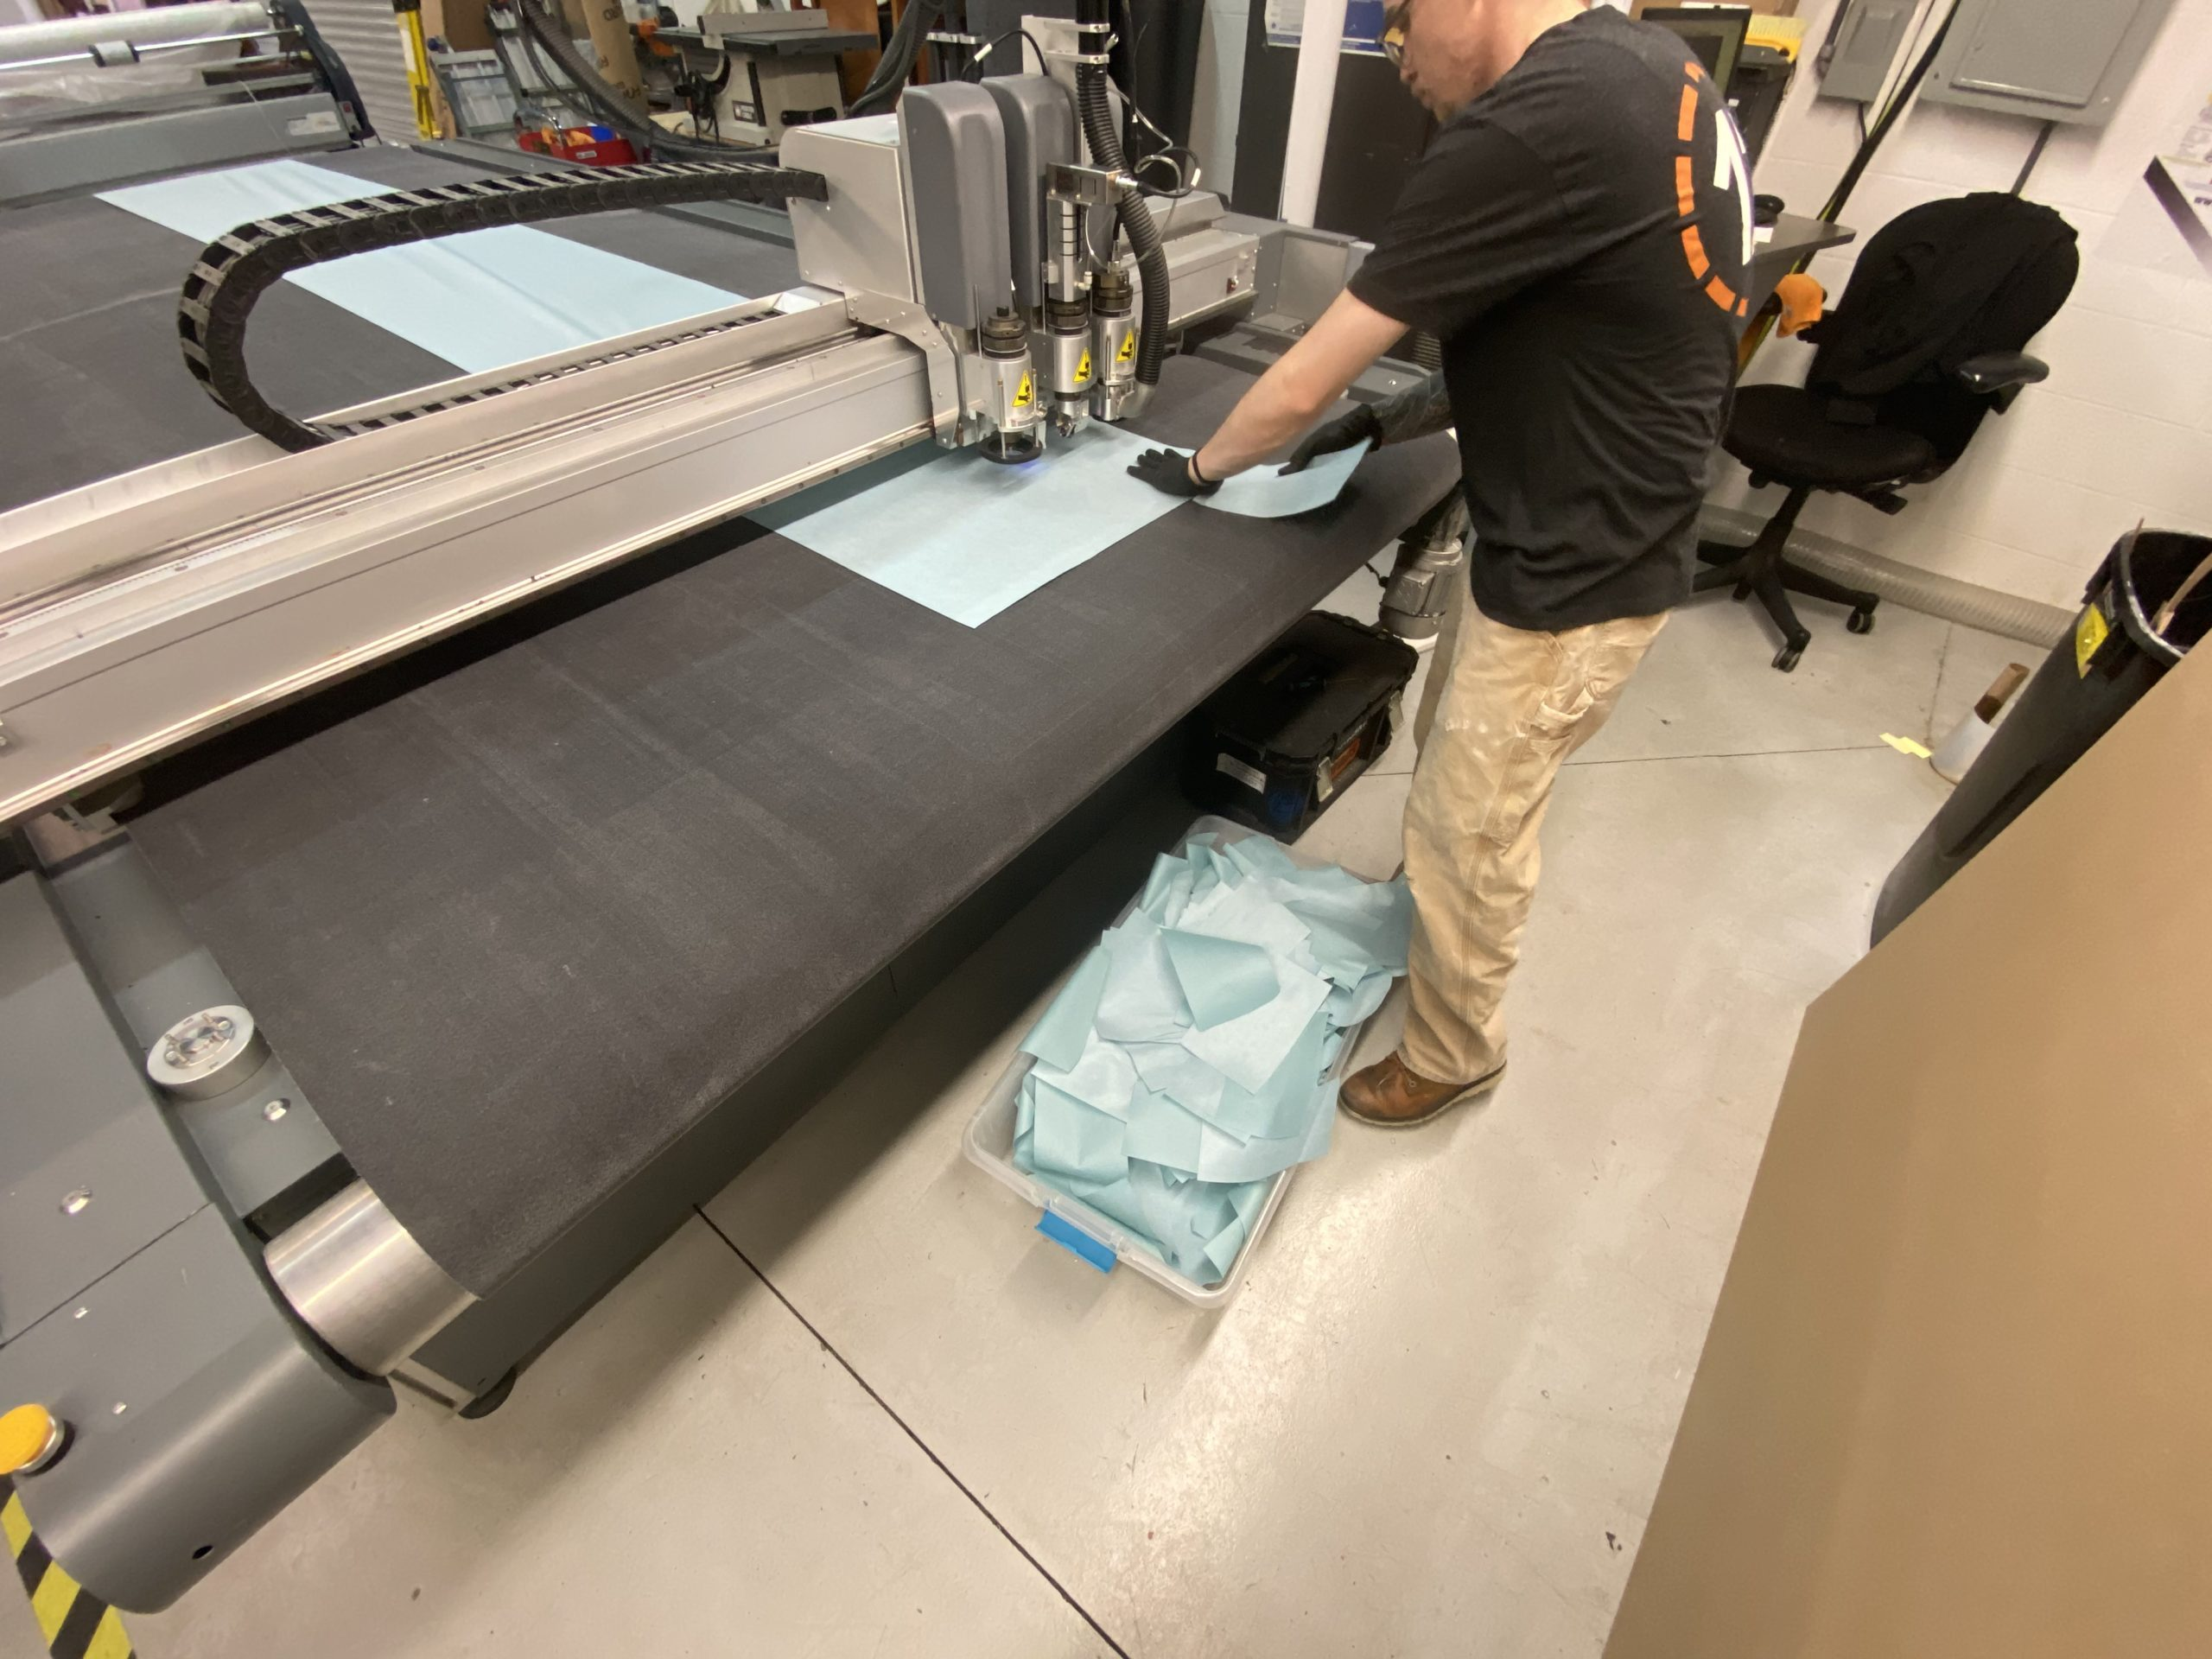 12-Point SignWorks team member working on cutting material